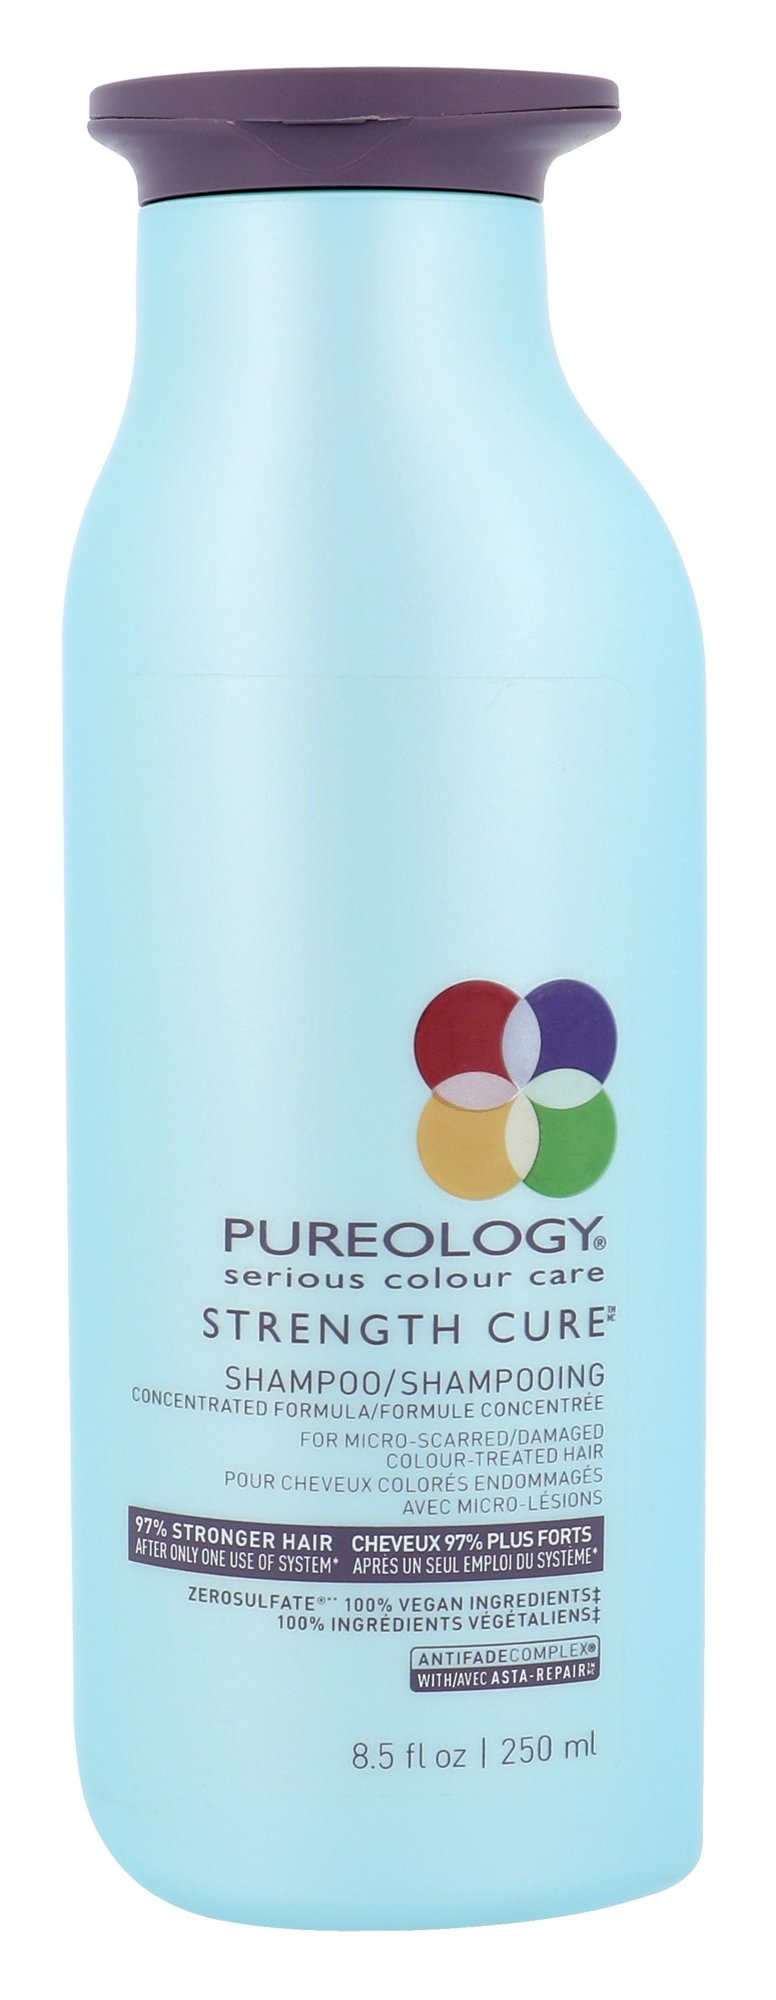 Redken Pureology Strength Cure Cosmetic 250ml